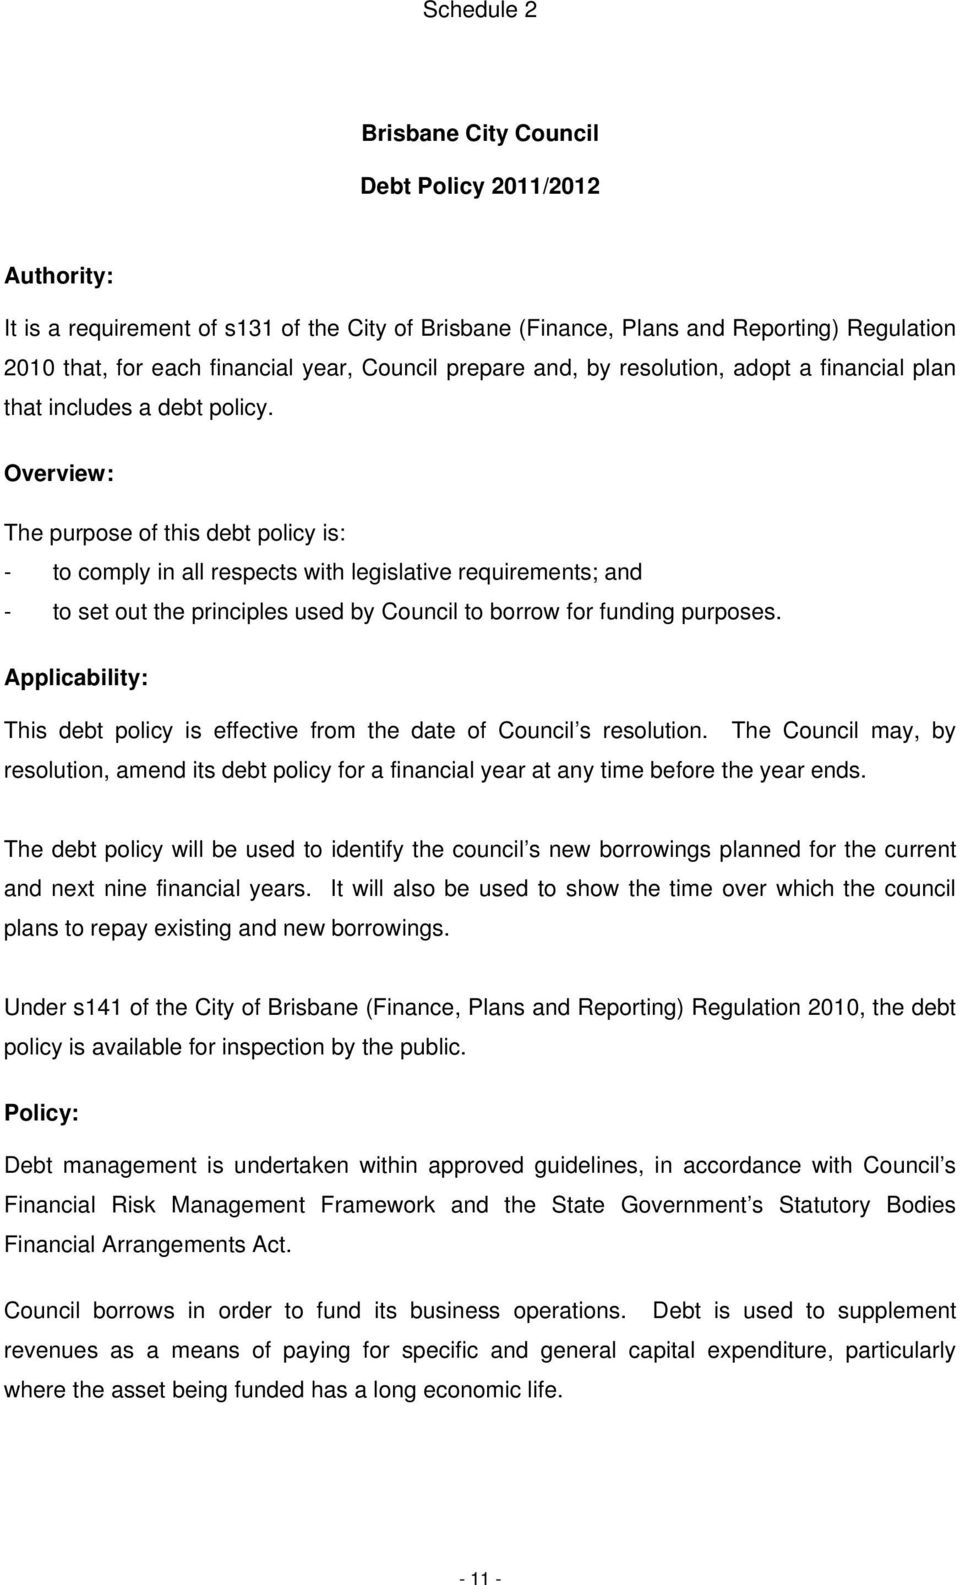 Overview: The purpose of this debt policy is: - to comply in all respects with legislative requirements; and - to set out the principles used by Council to borrow for funding purposes.